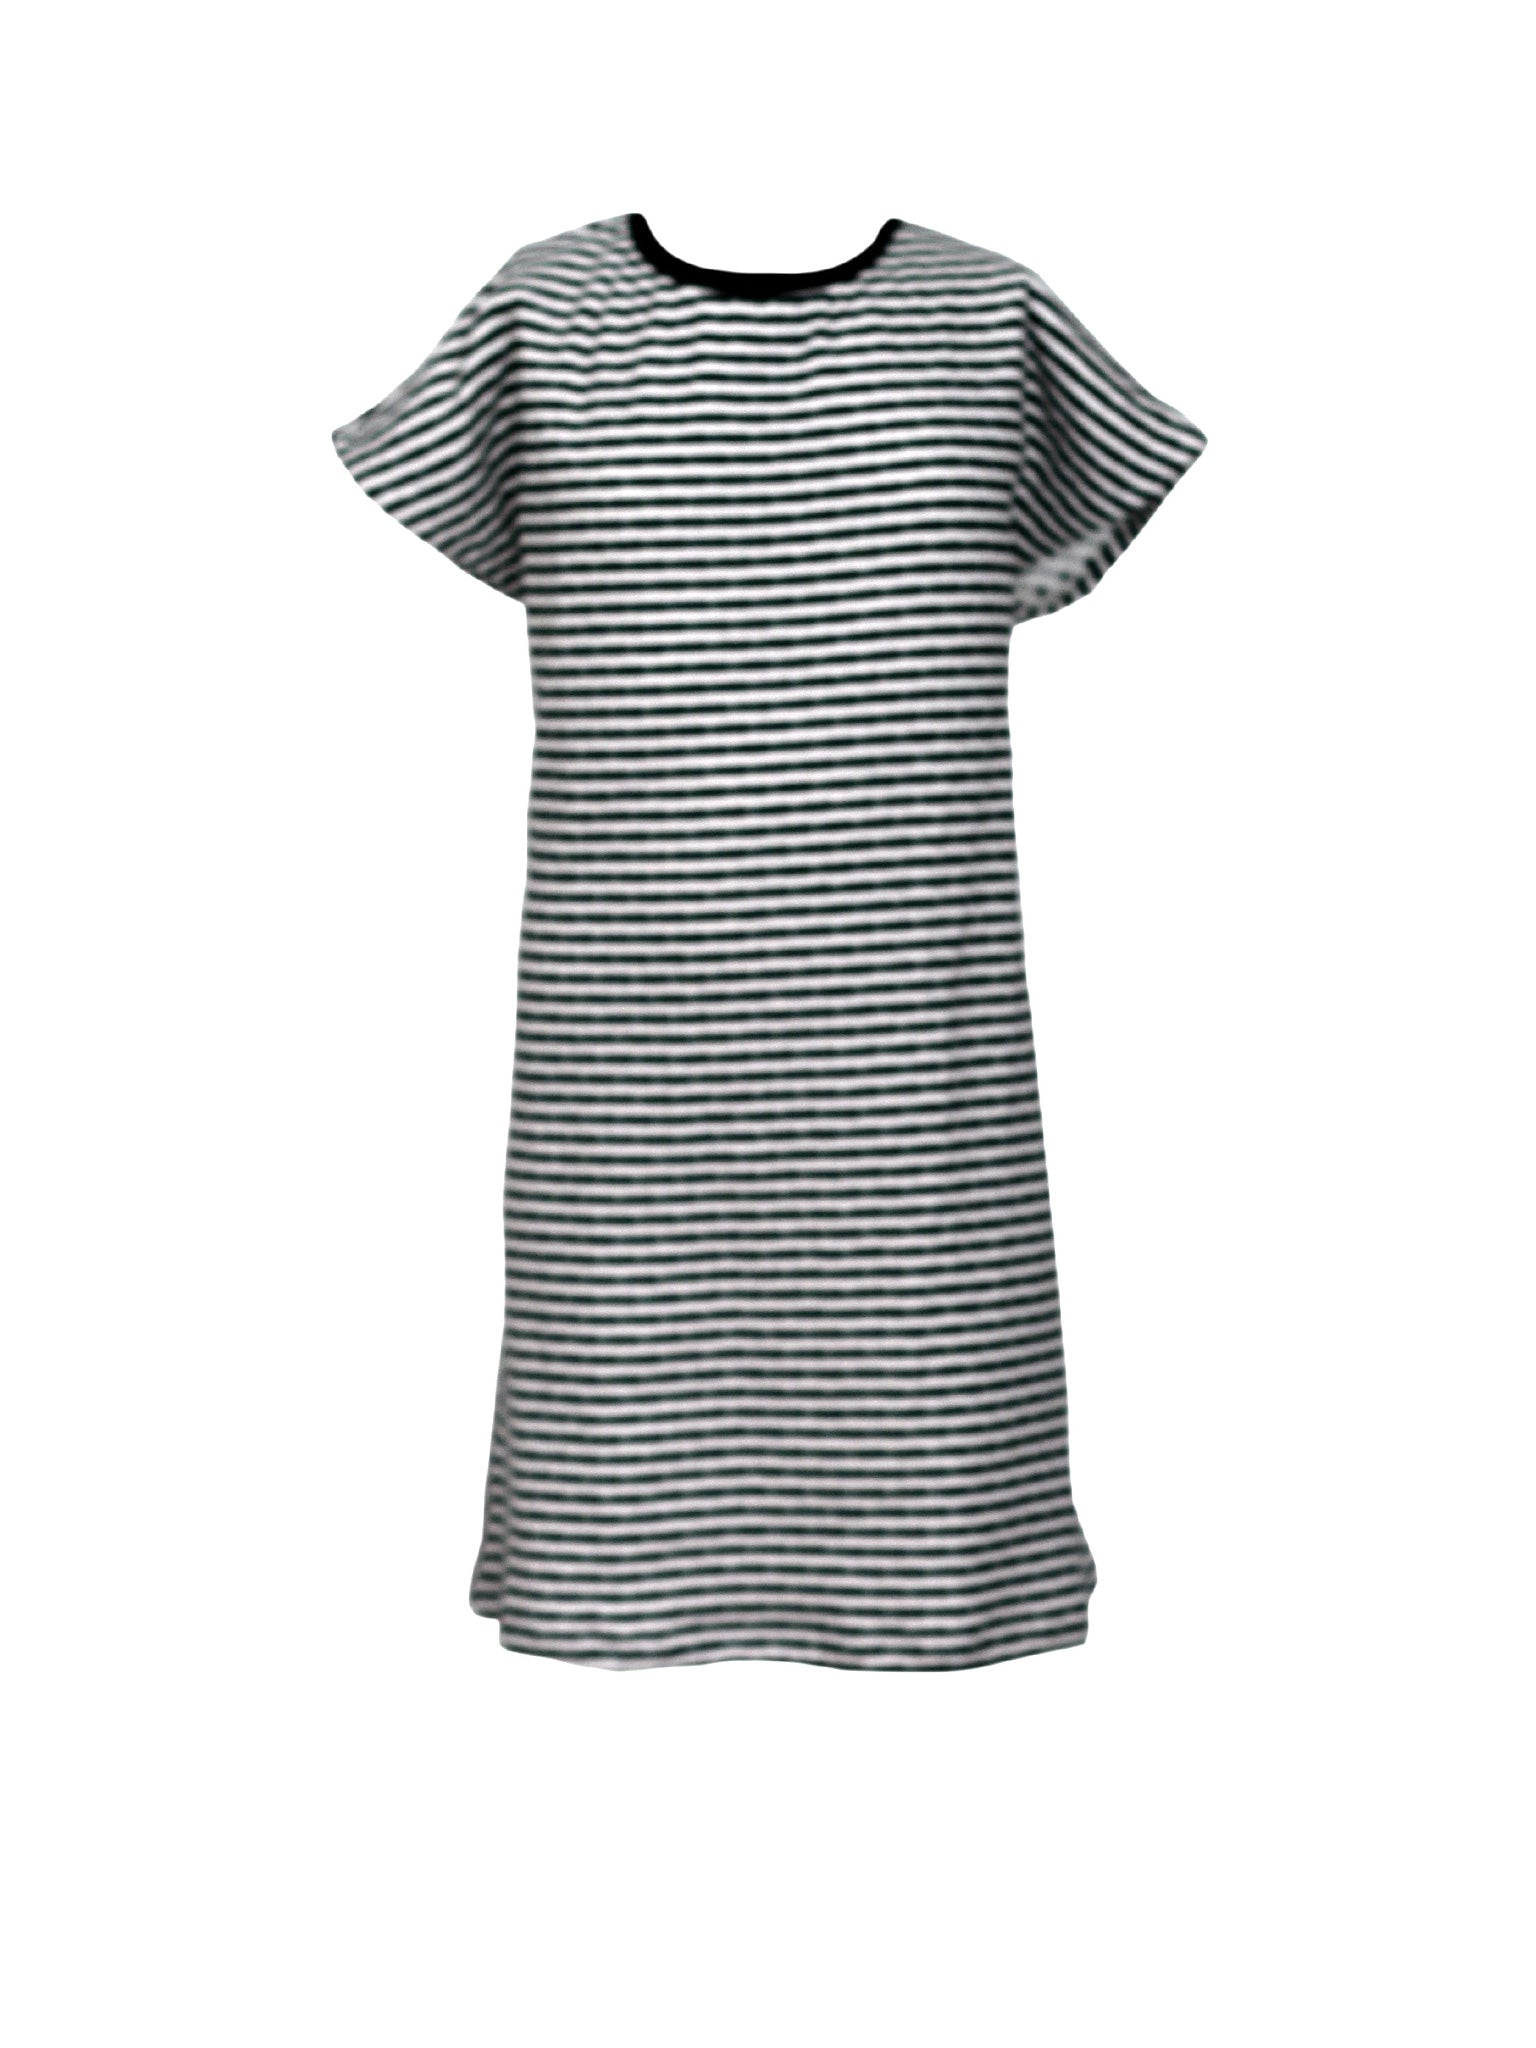 Double Sided Organic Cotton T-Shirt Dress